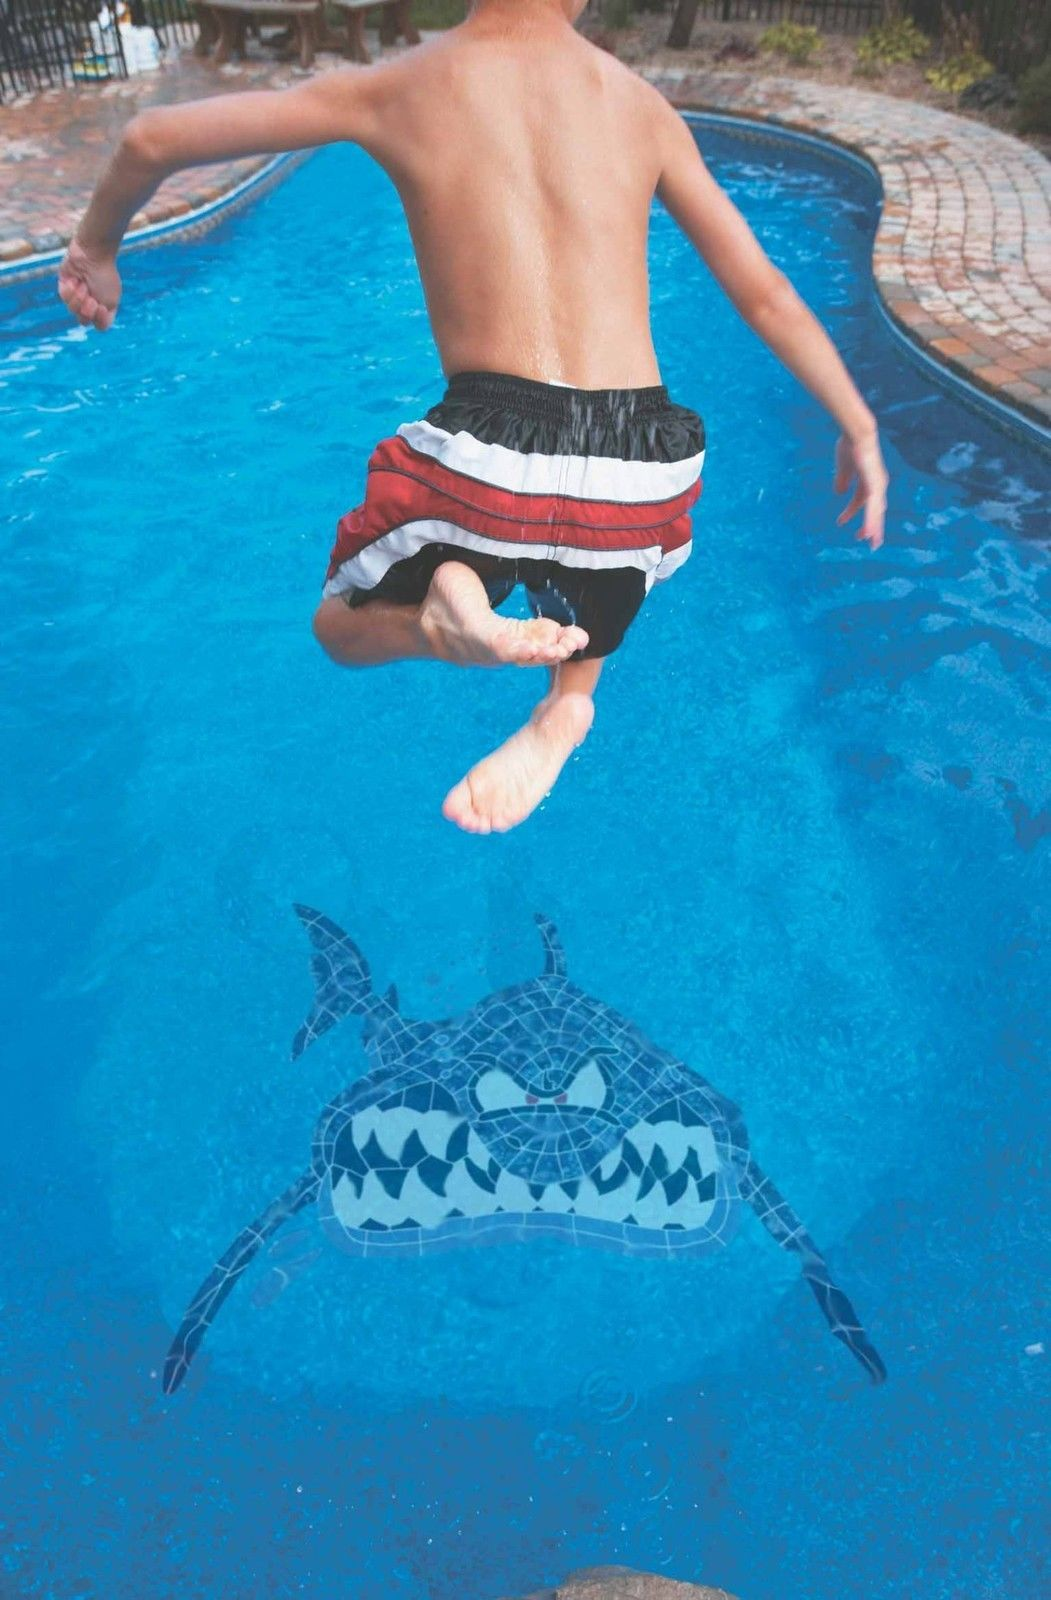 Seasons Pool Shark Shark Hammerhead Ceramic Mosaic